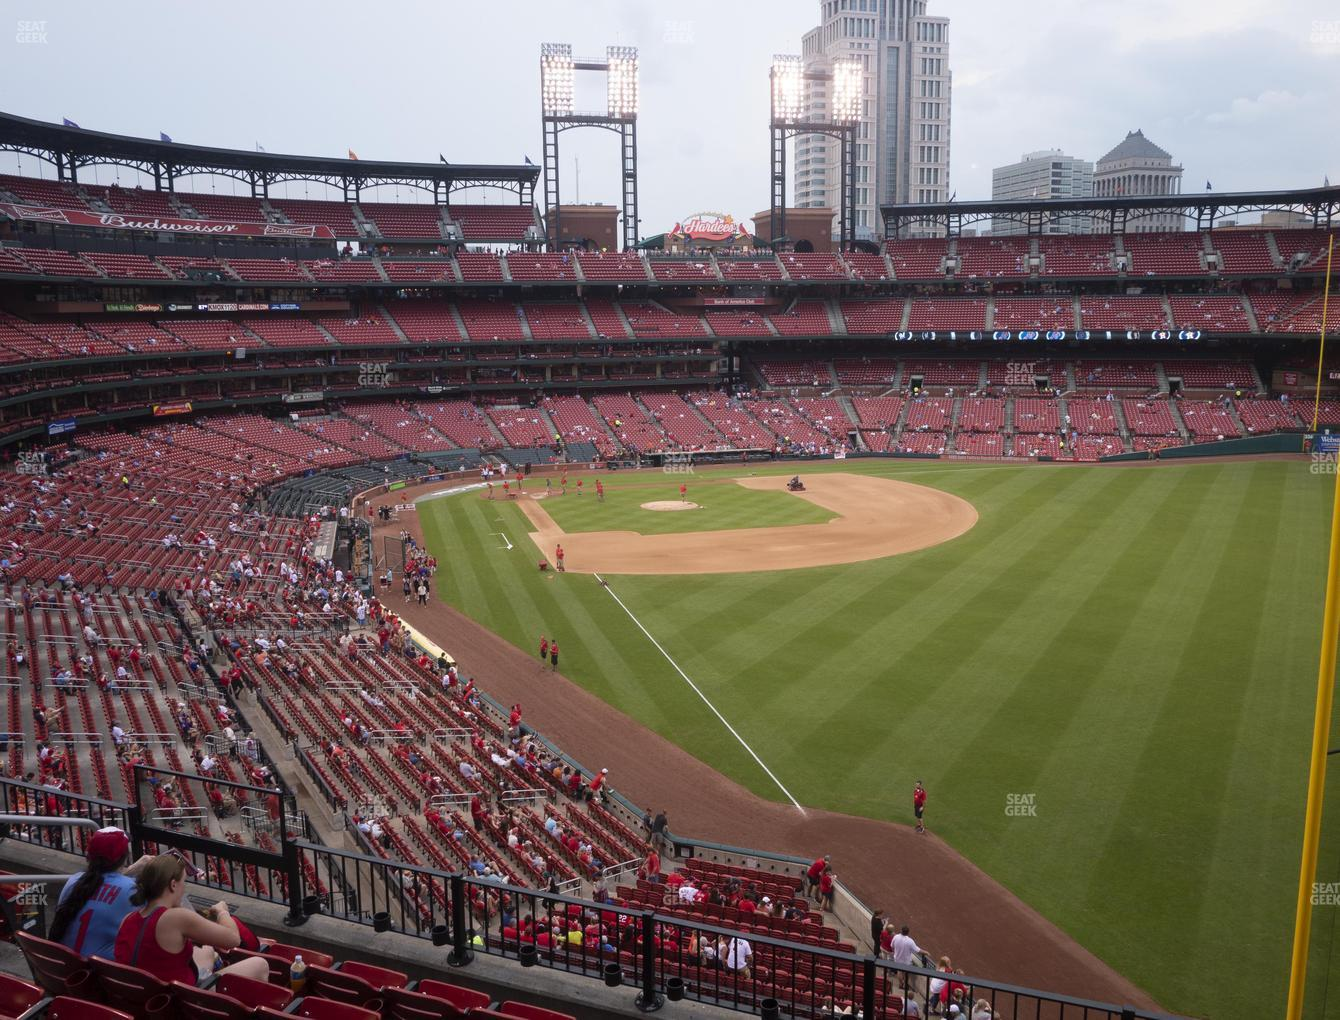 St. Louis Cardinals at Busch Stadium Right Field Loge 231 View